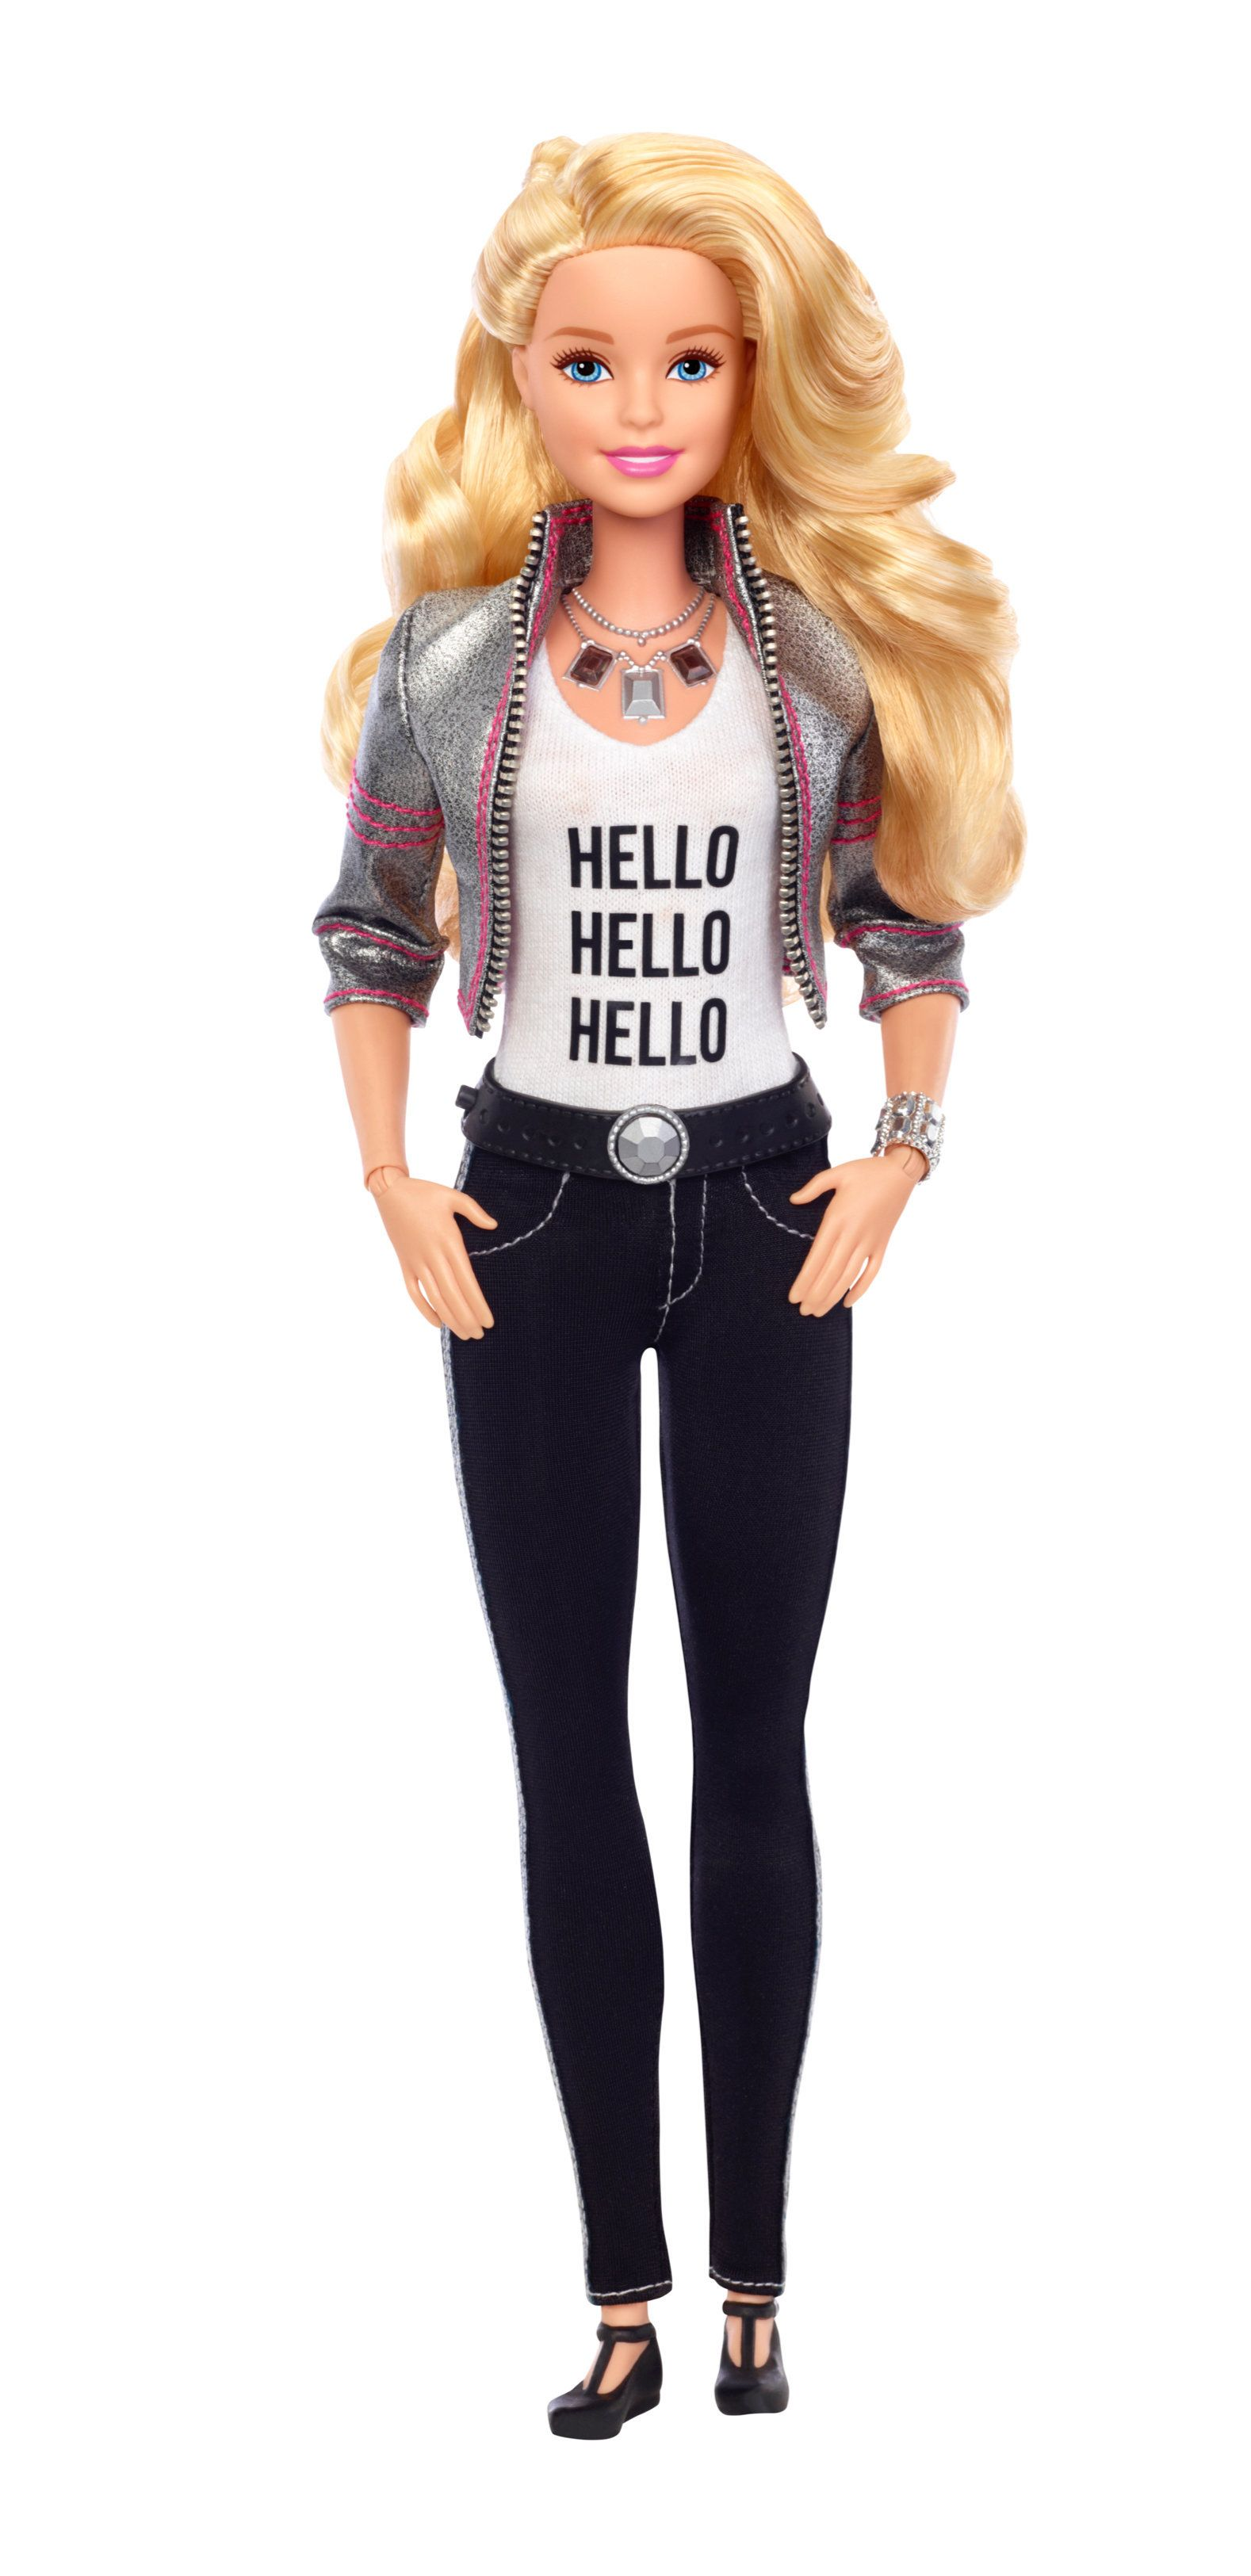 Hello Barbie Goodbye Privacy Hacker Raises Security Concerns